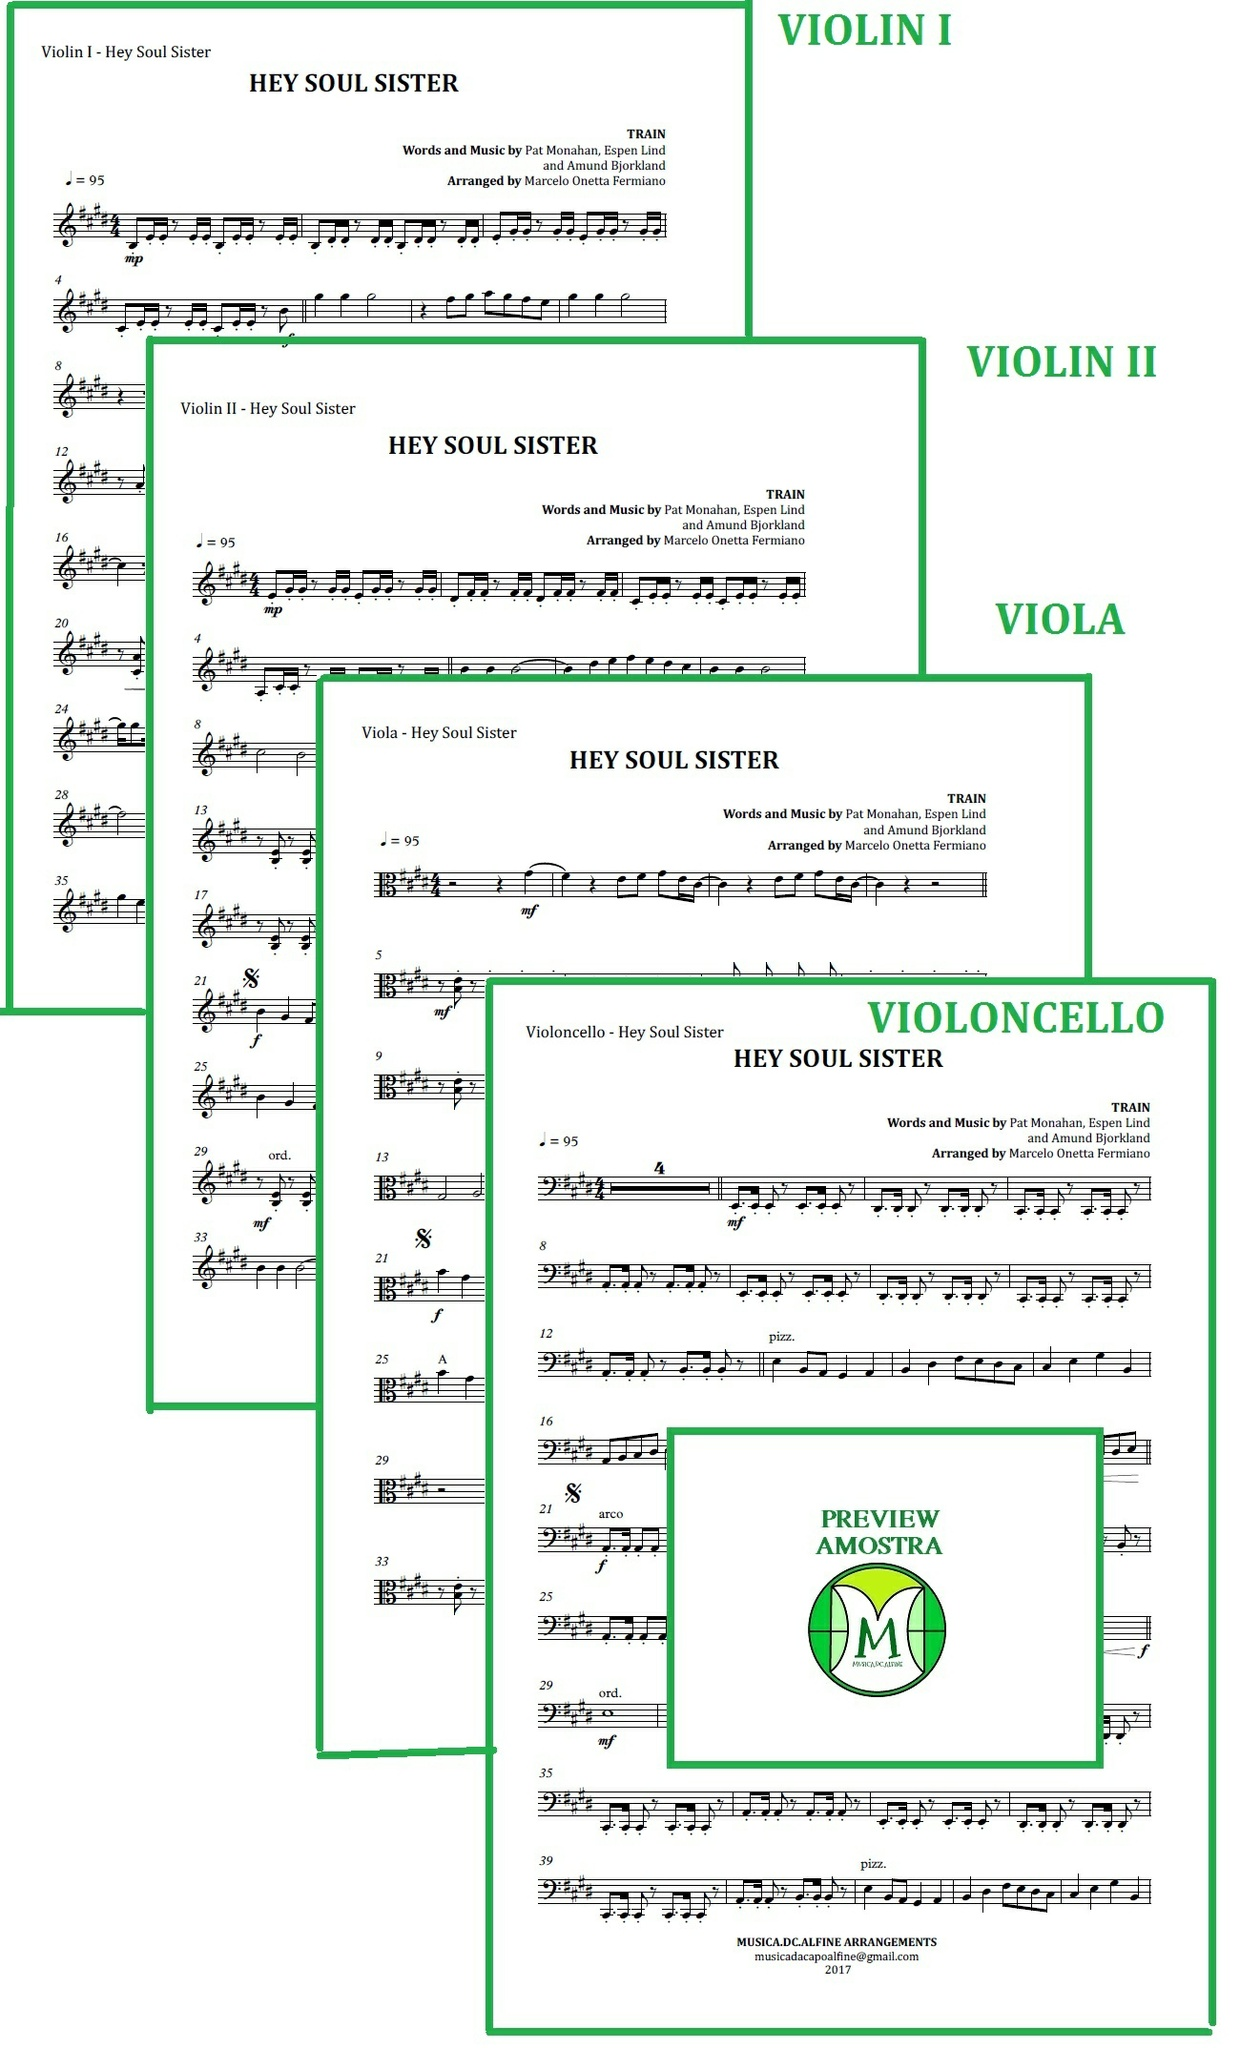 Hey Soul Sister | Train | String Quartet | Score and Parts | Download